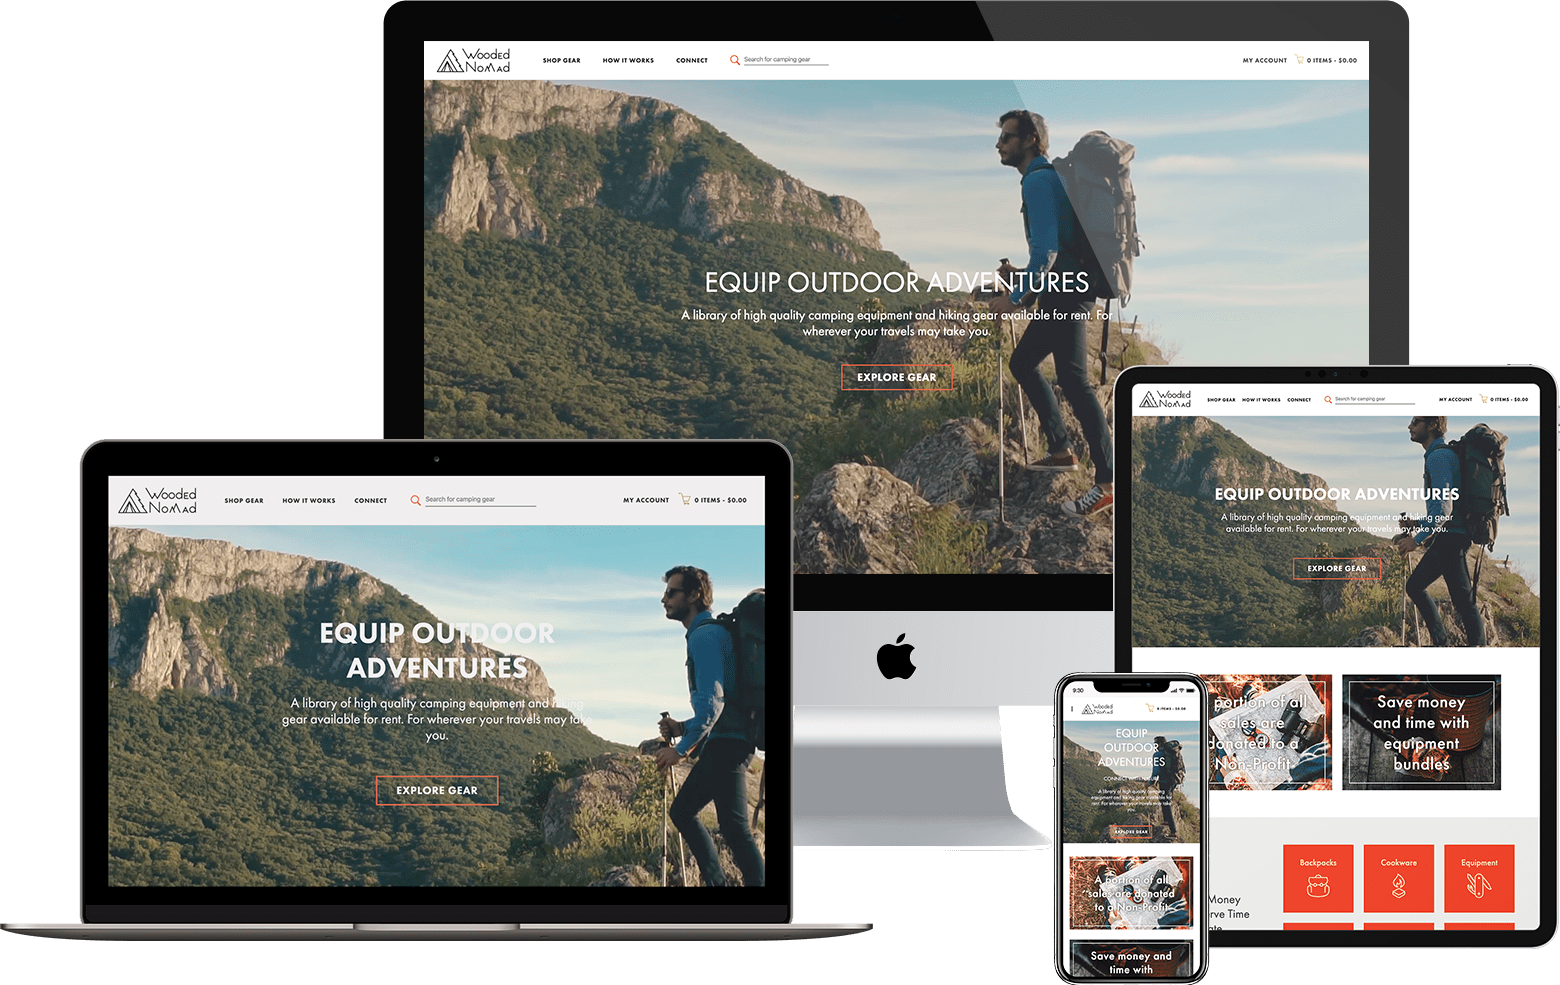 Screenshots of Minneapolis web design and development project - Wooded Nomad website